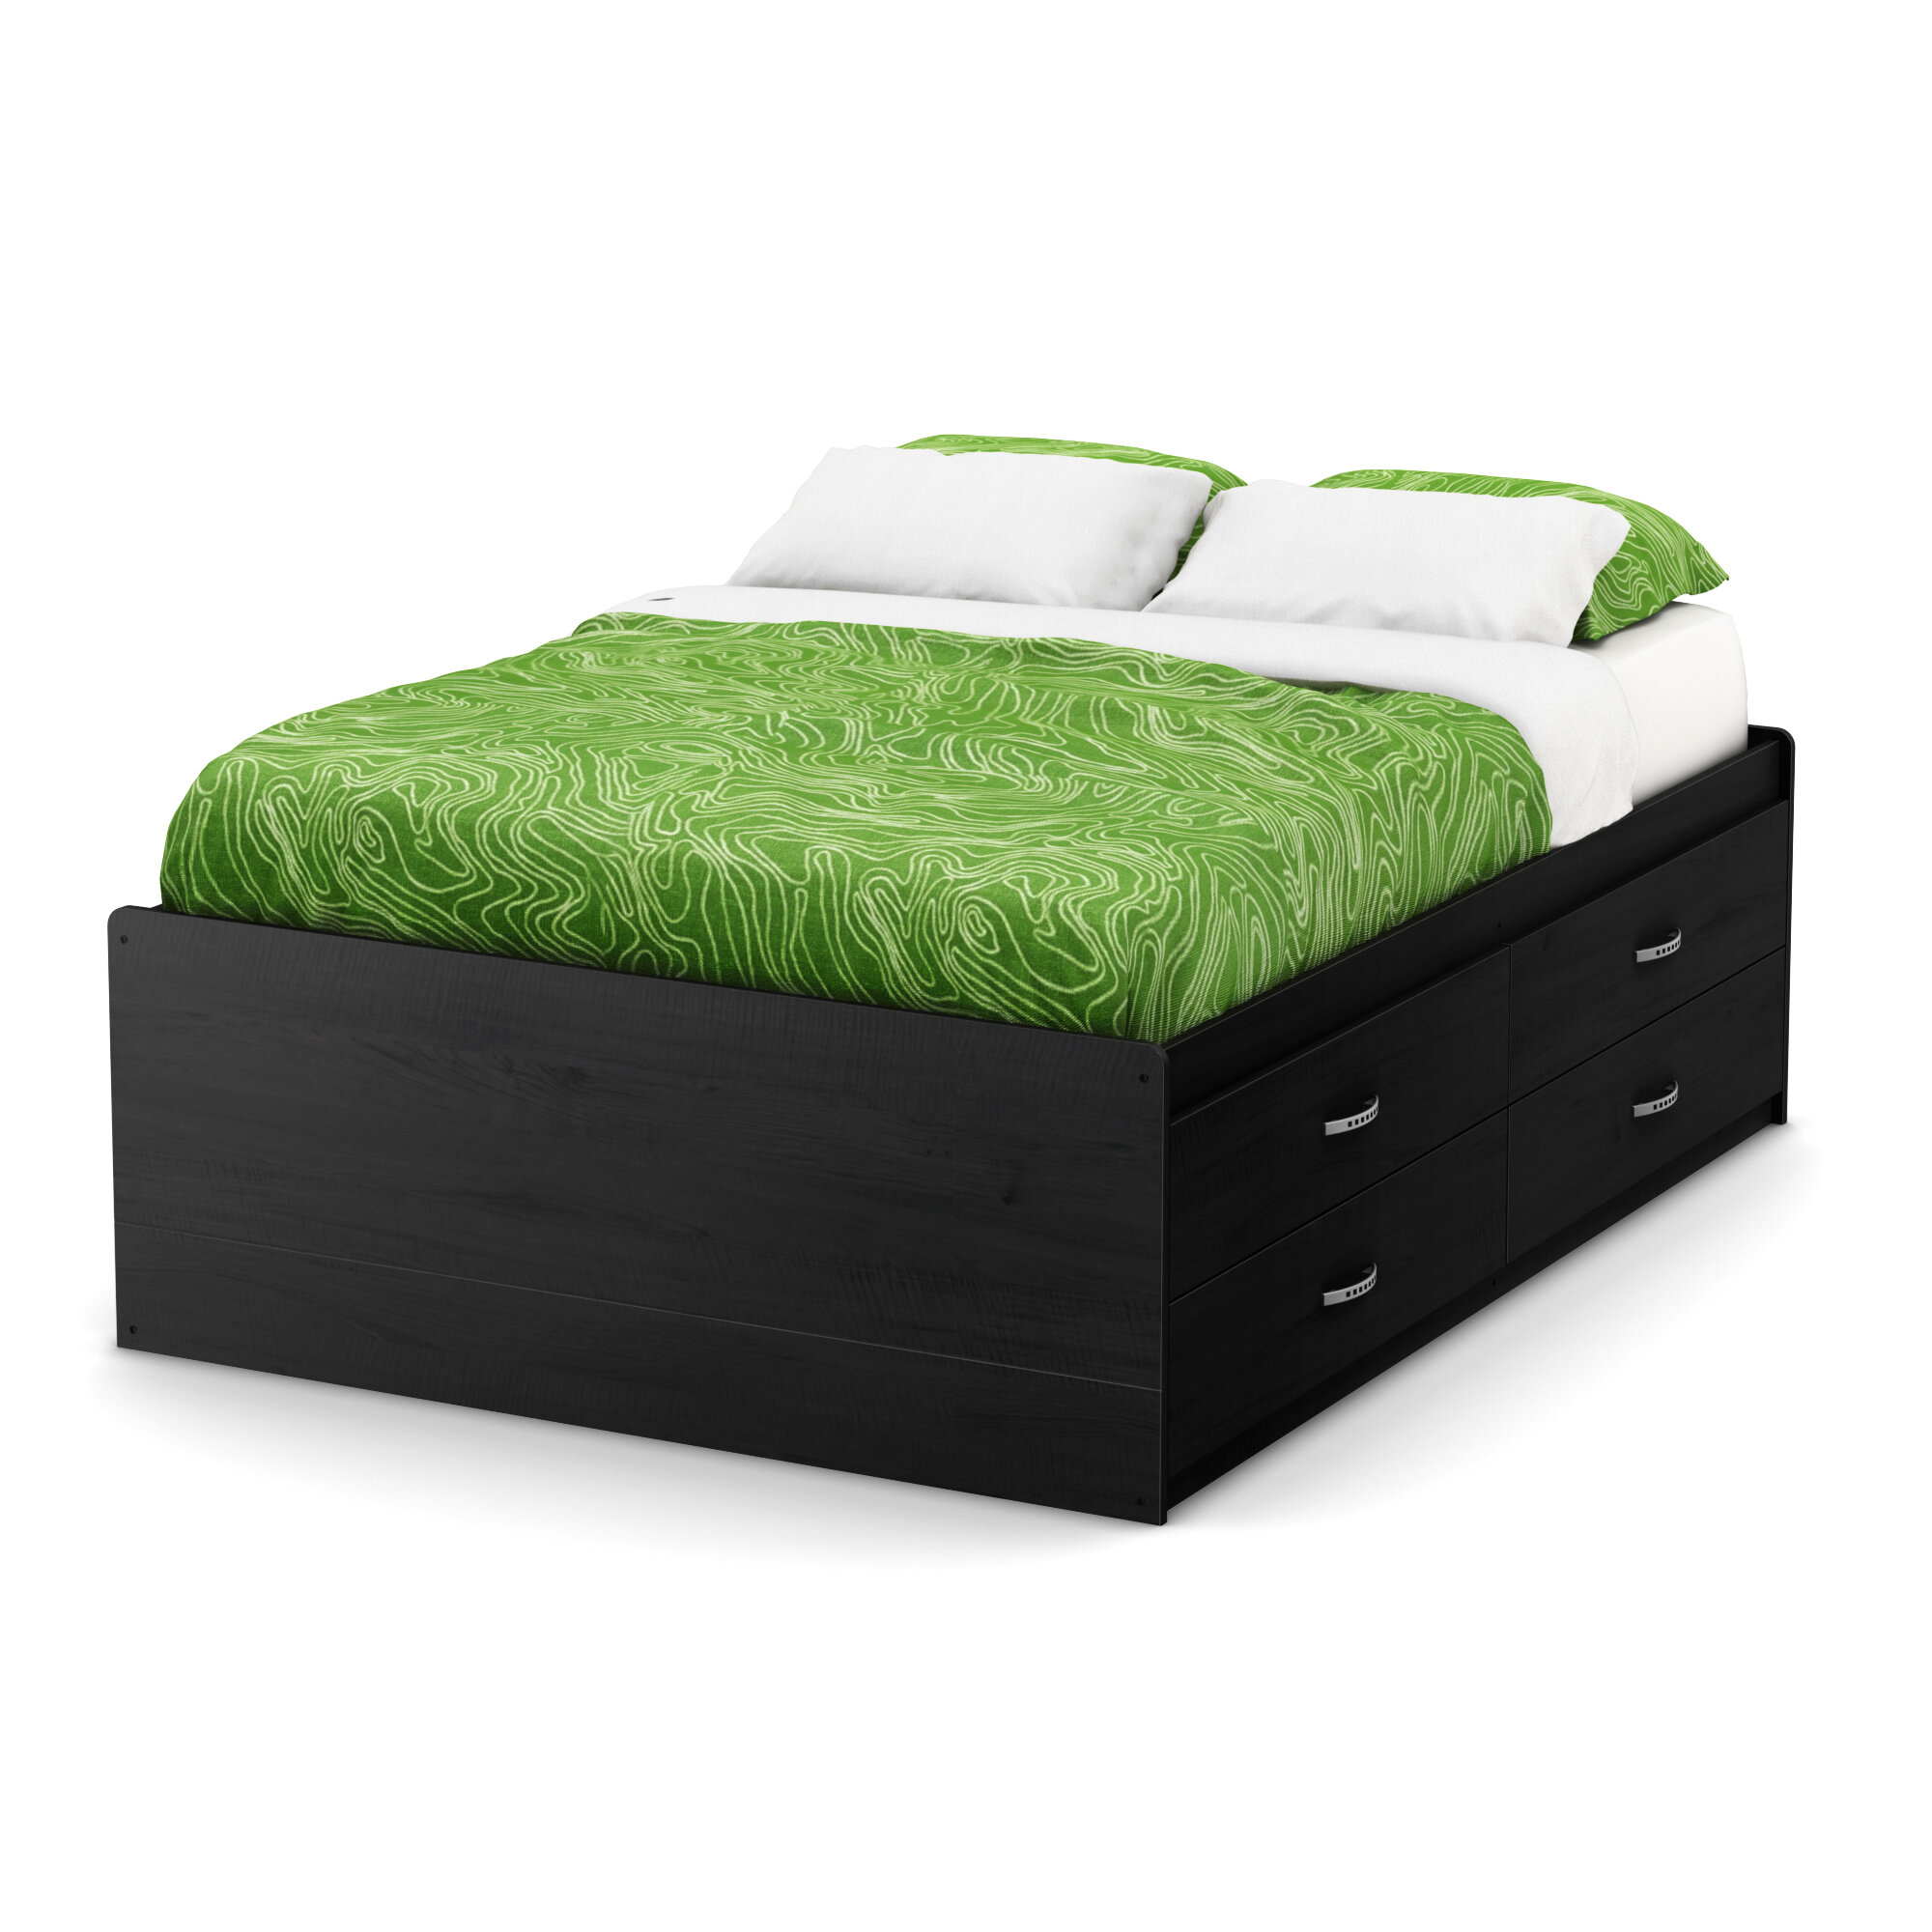 scott quirky bedroom drawers size gallery s with bed king tn of cleveland furniture captains full